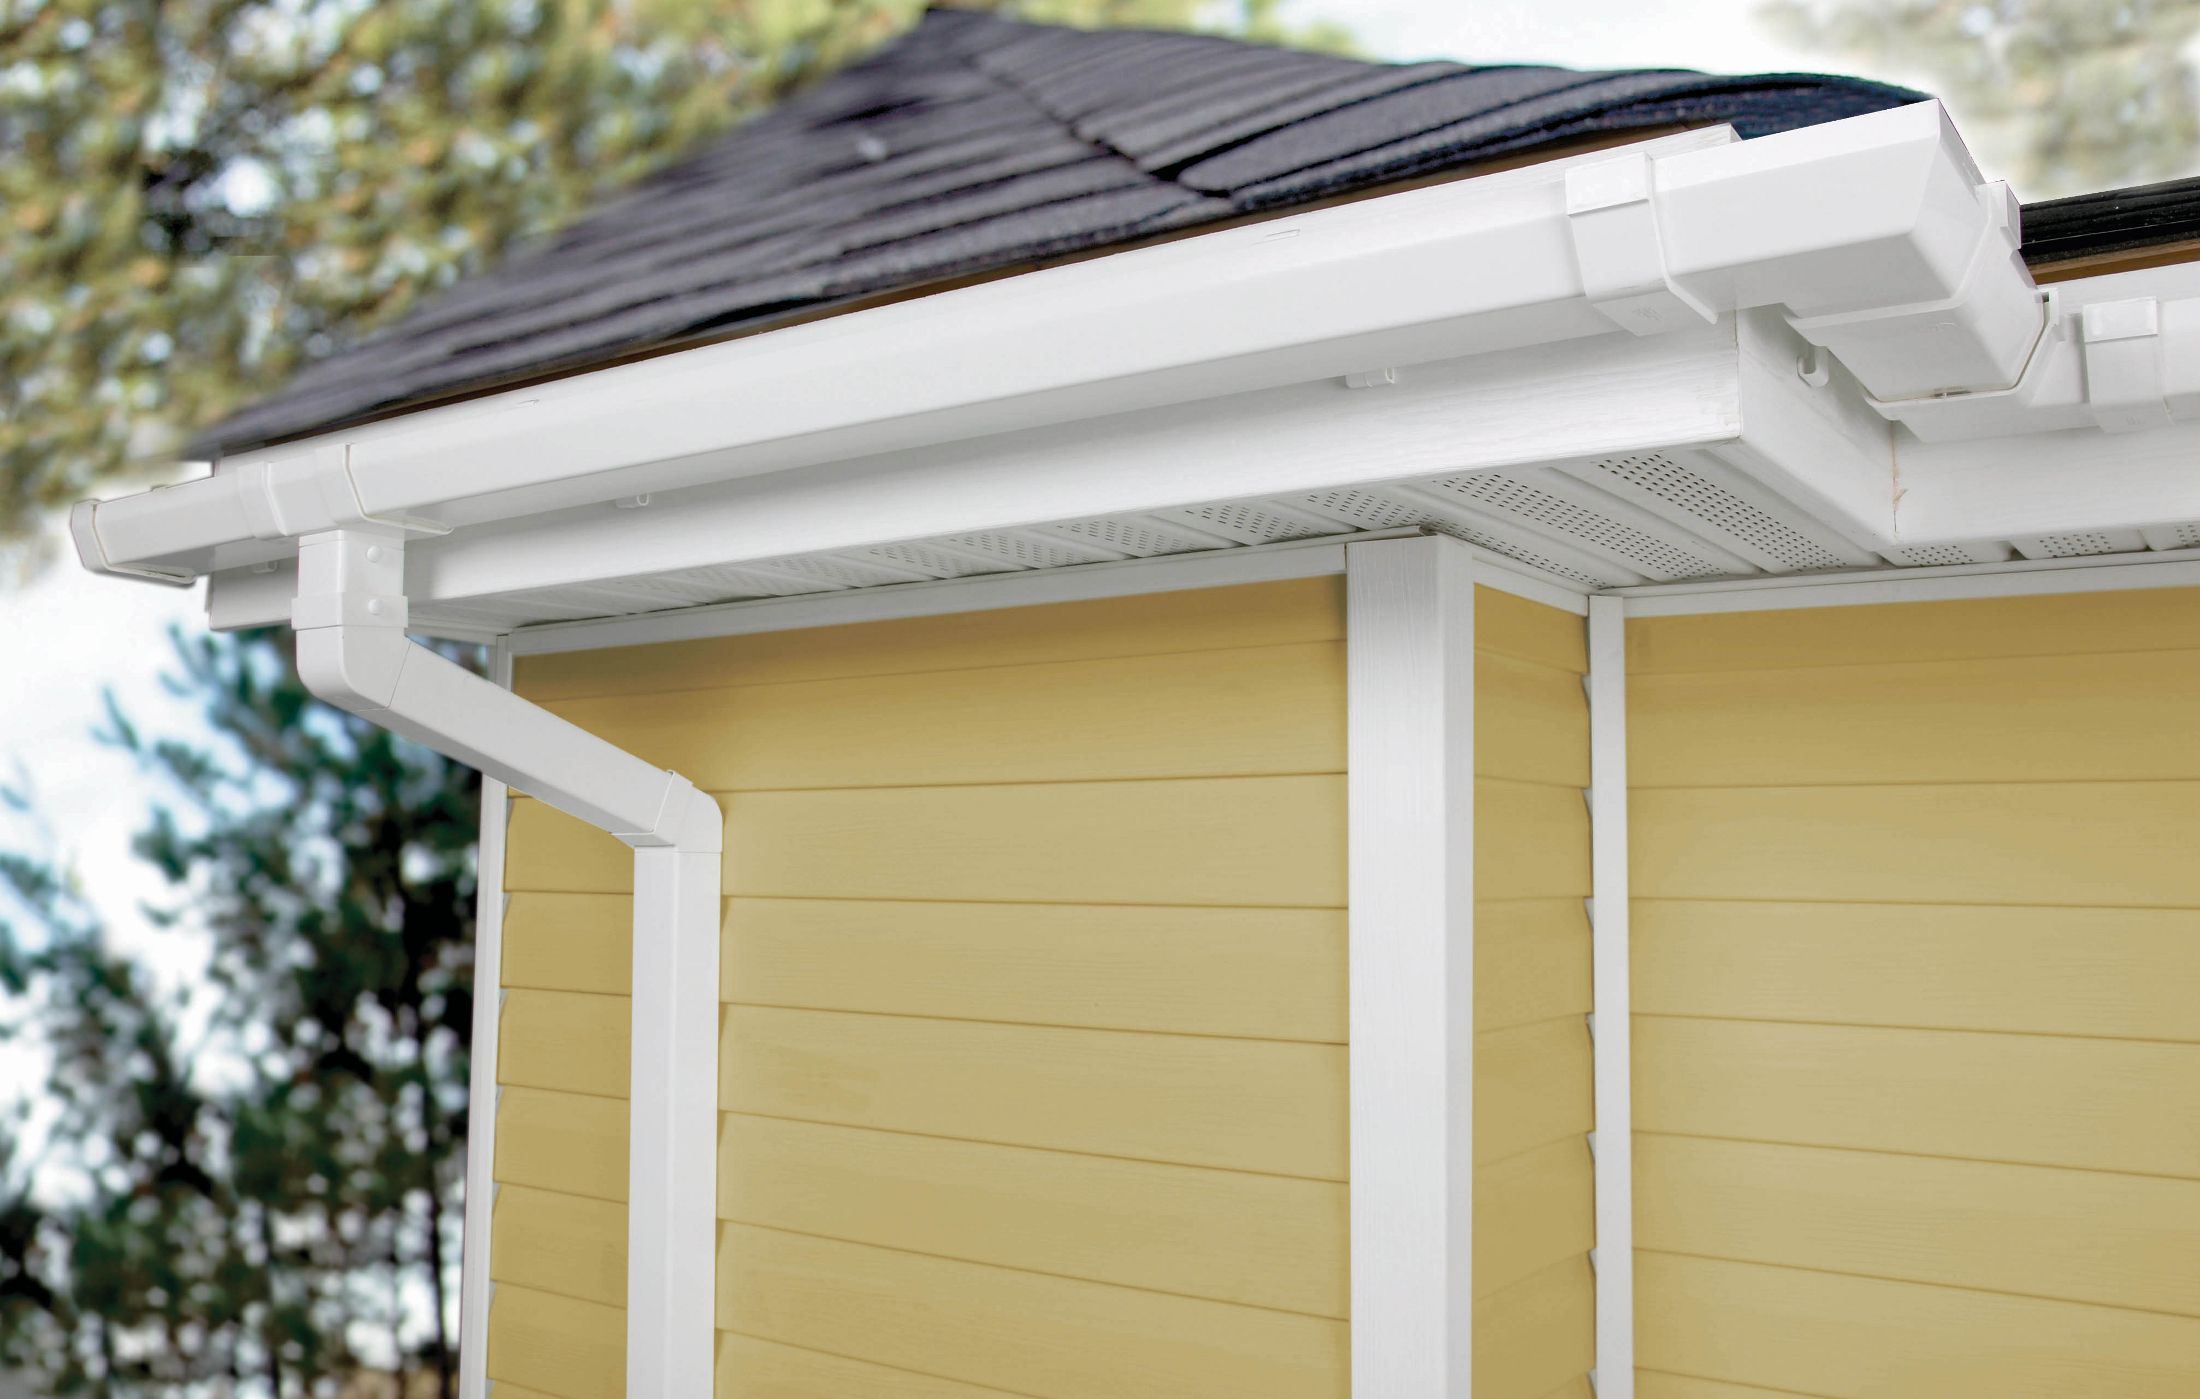 Vinyl Gutters Easy To Install And Less Costly Light Weight Lots Of Variety And Colors Vinyl Gutter Gutters Gutter